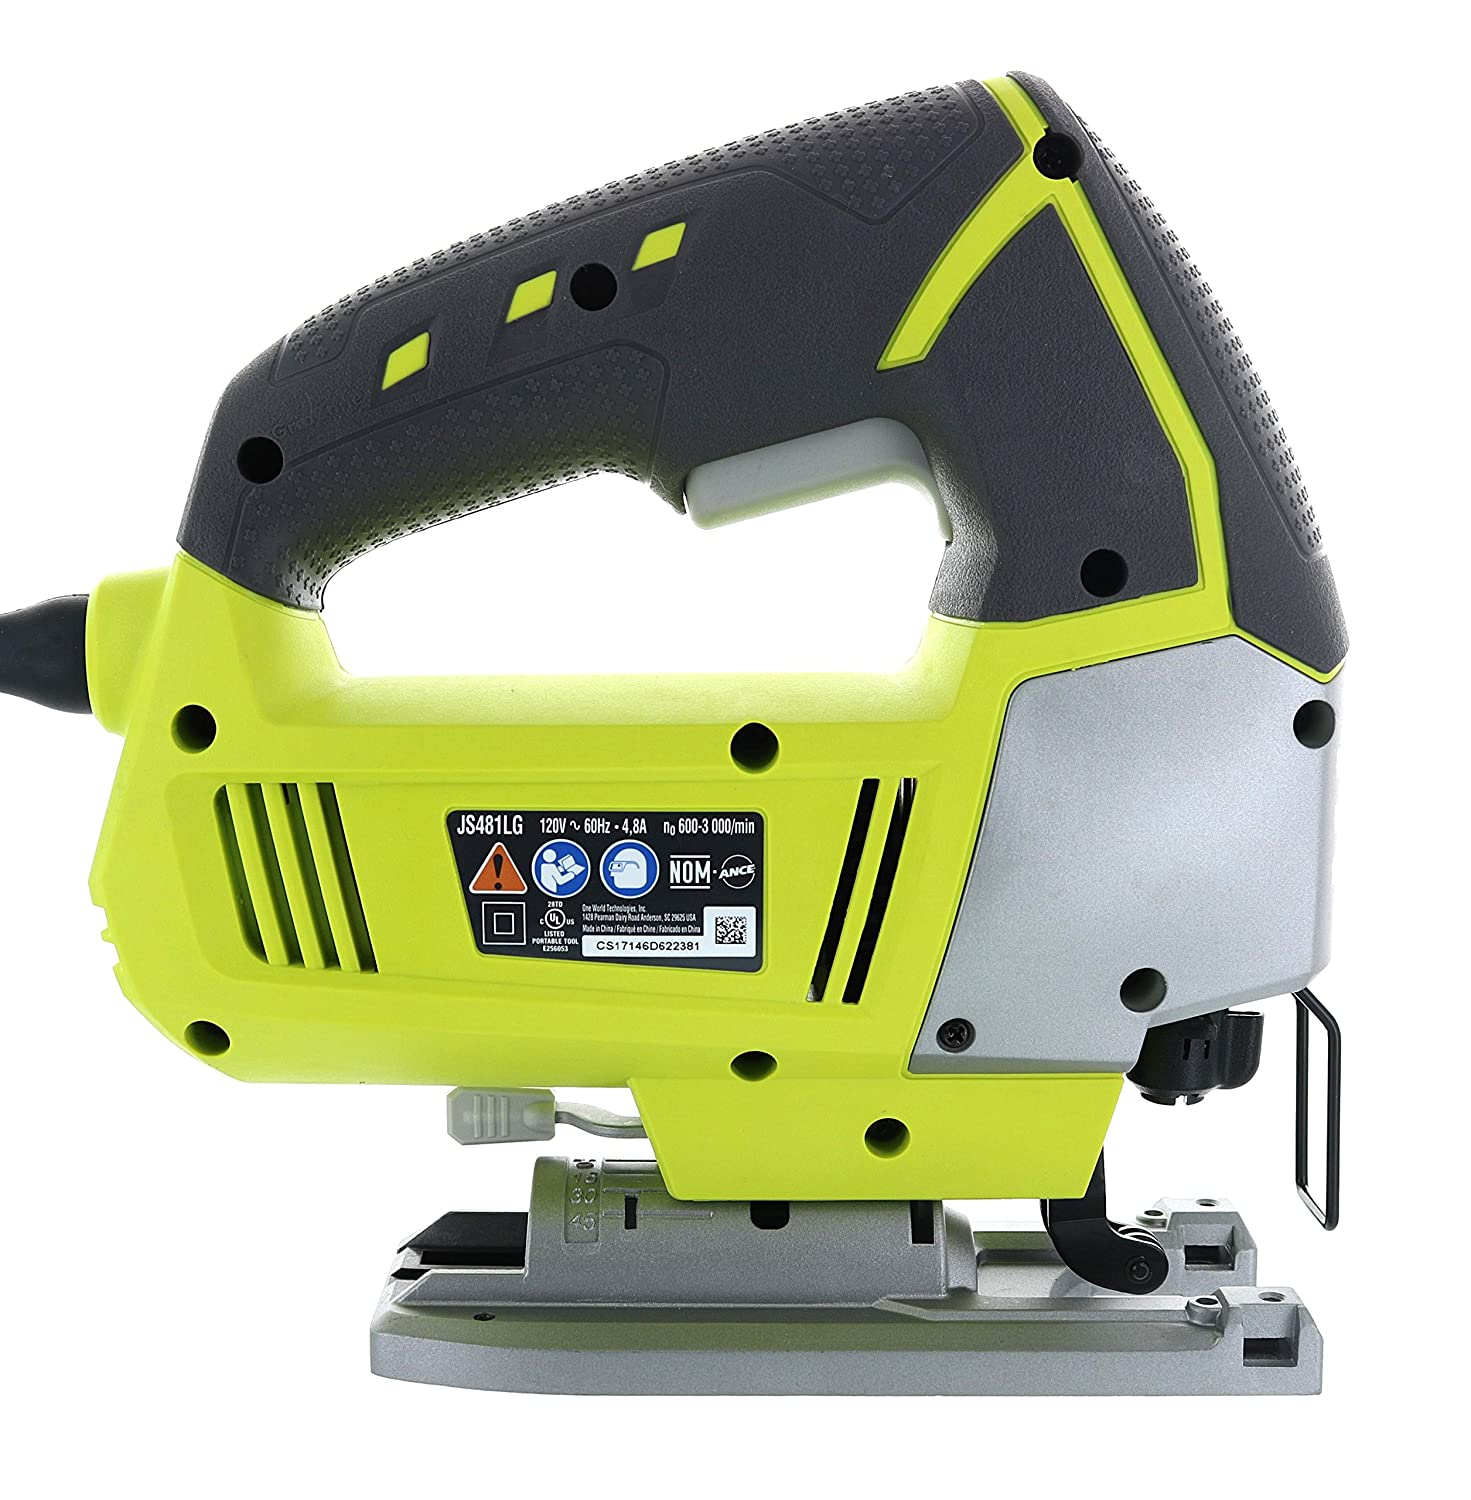 Ryobi JS481LG 4.8 Amp Corded Variable Speed T-Shank Orbital Jig Saw w Onboard LED Lighting System